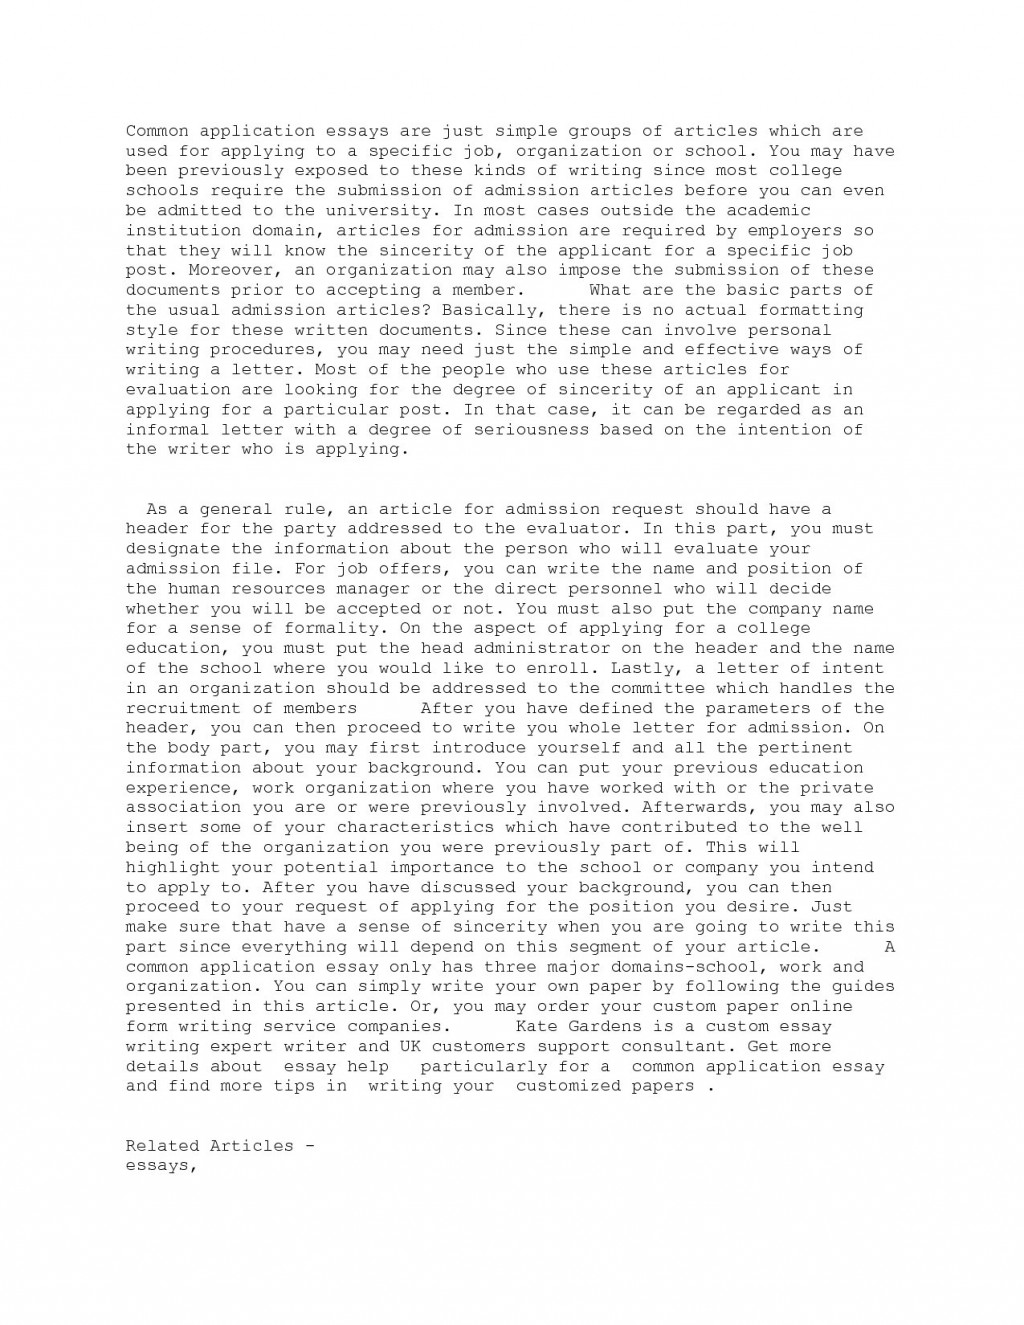 015 Common App College Essay Example Examples Of Essays For Application Transfer Ess Striking Format Word Limit Large